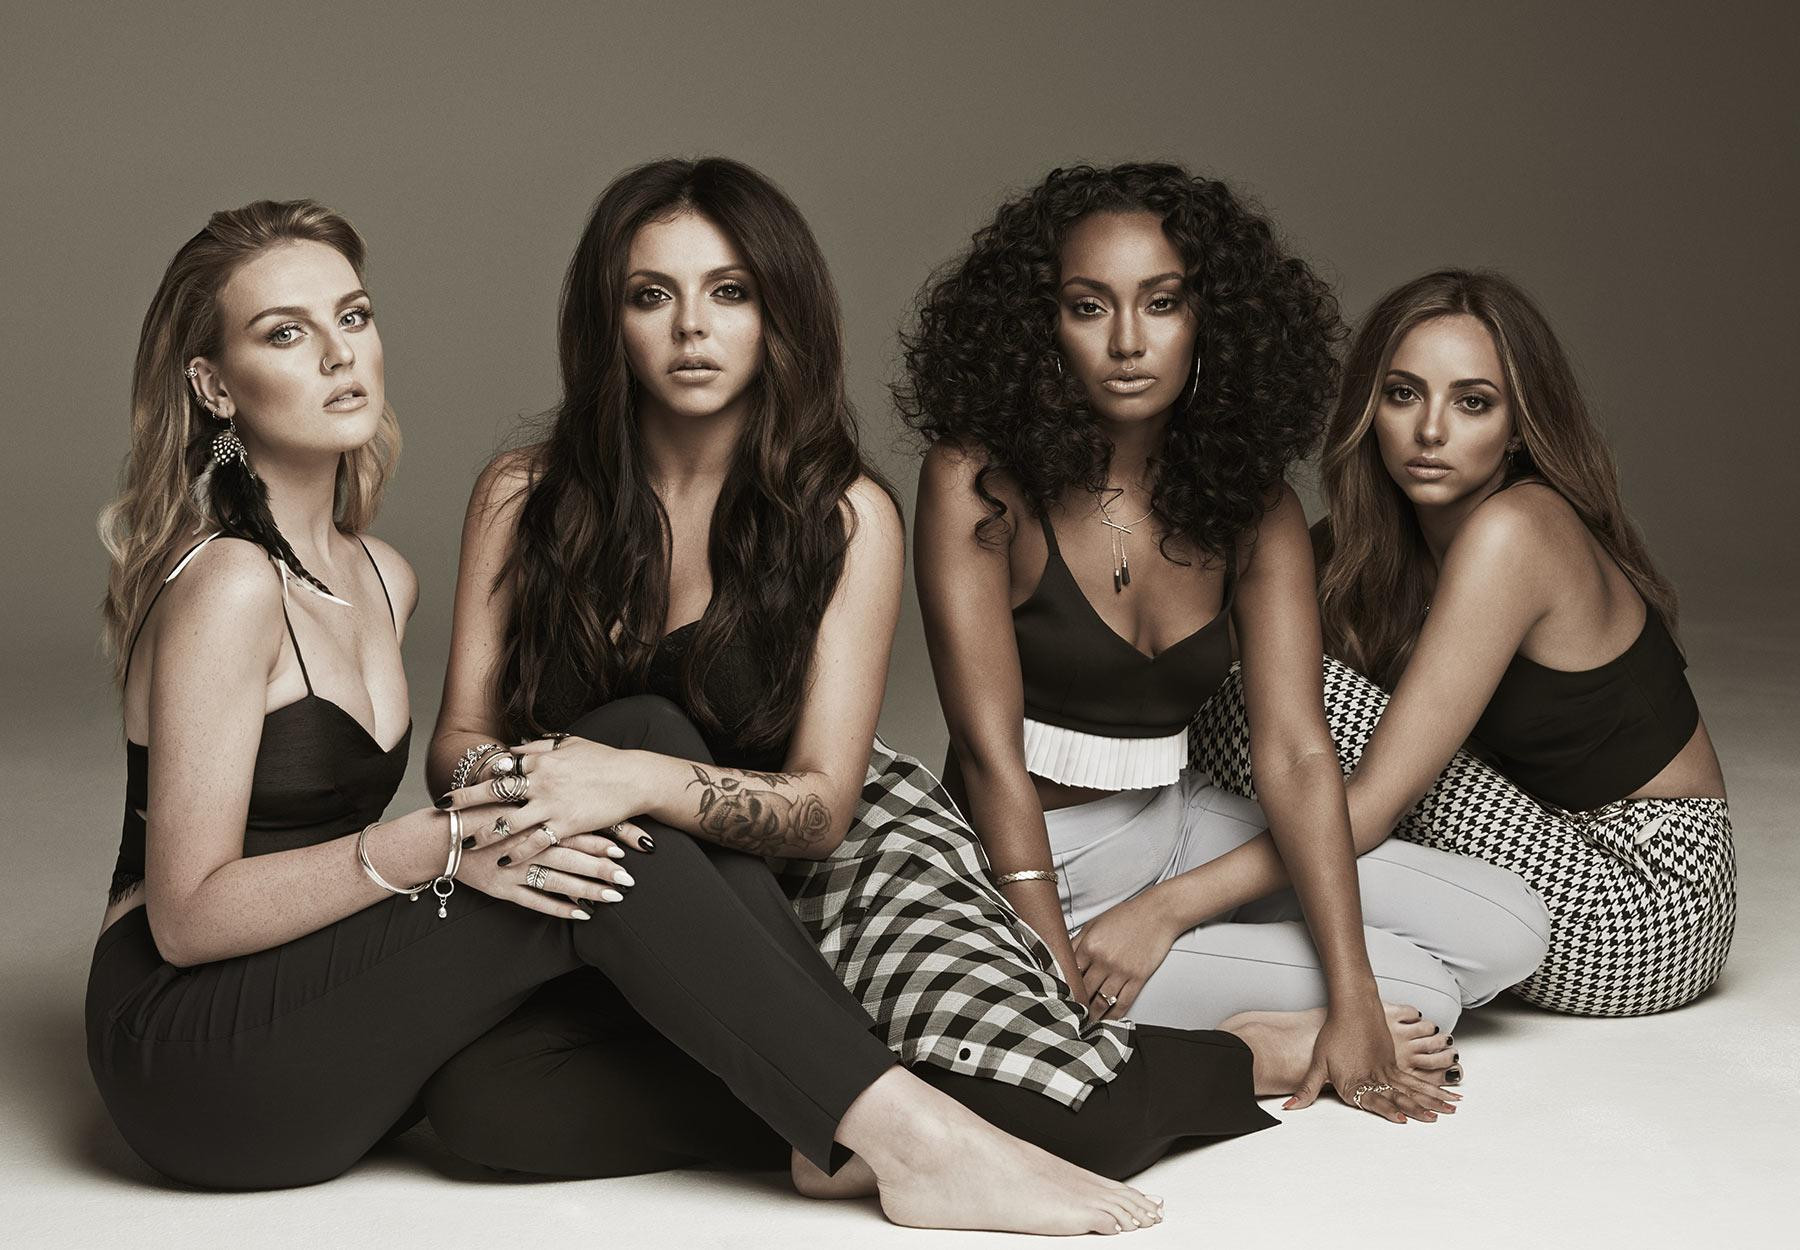 (Photo by Little Mix Website)